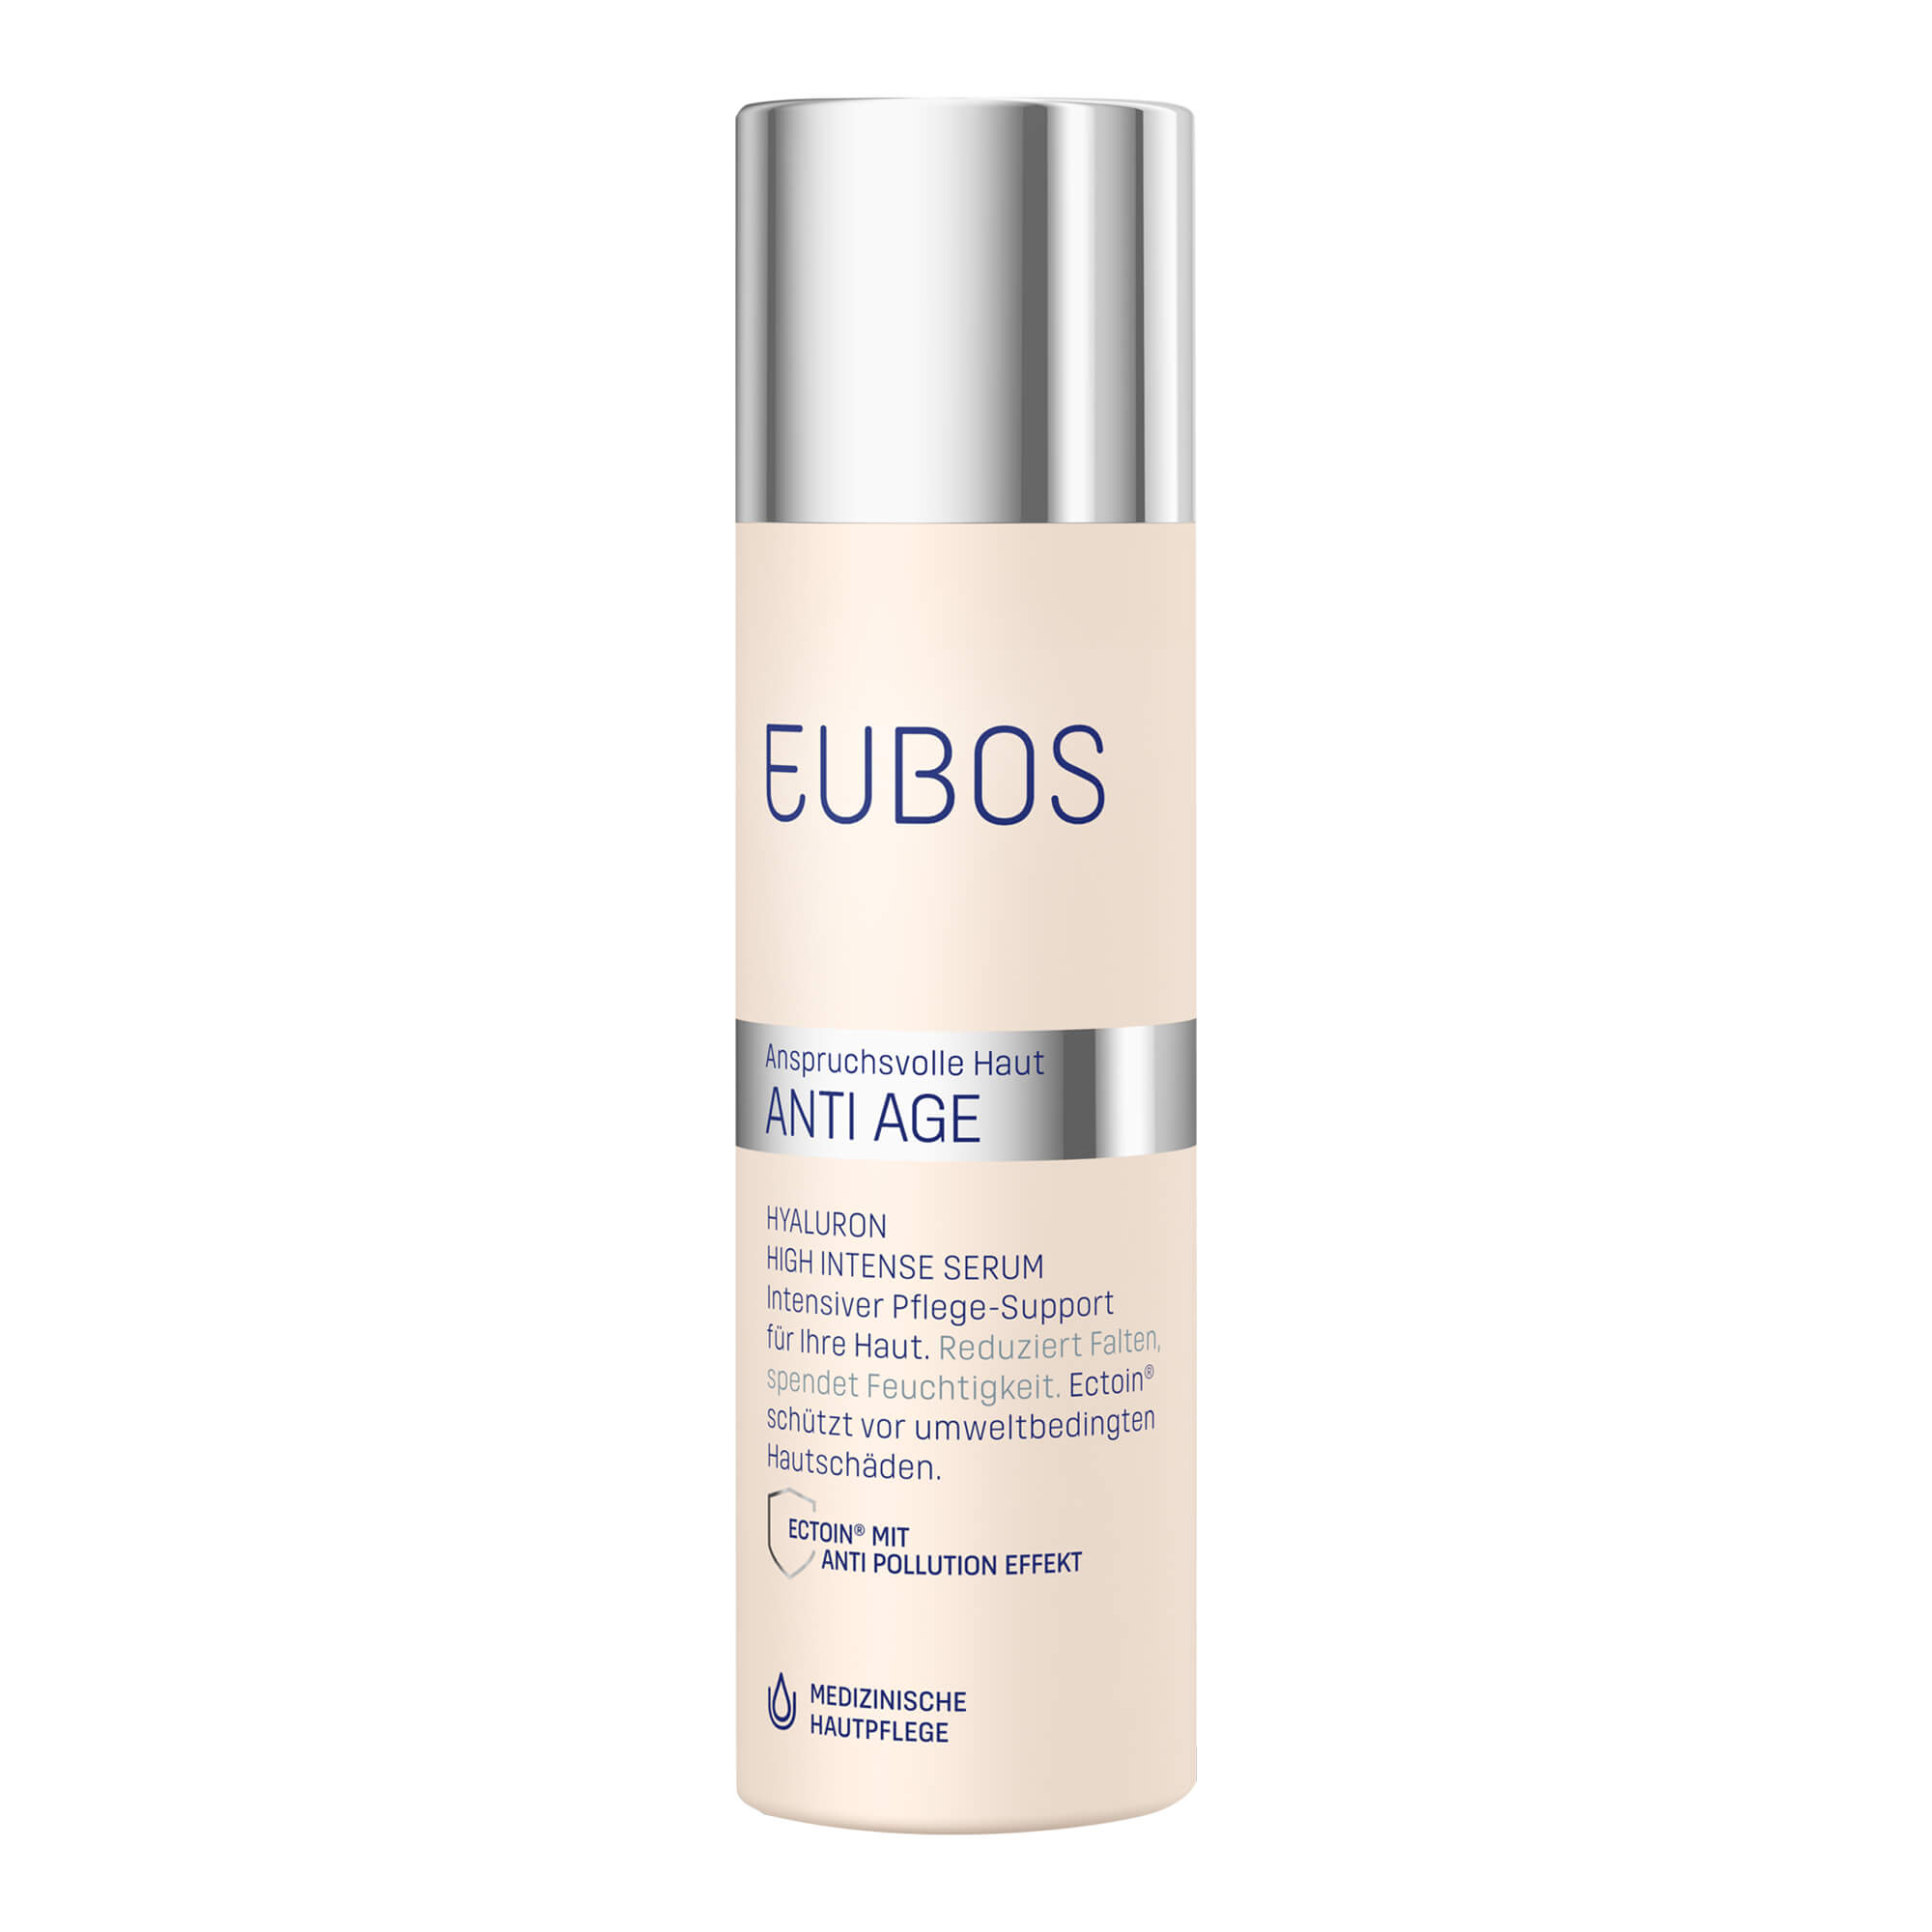 Eubos ANTI AGE Hyaluron High Intense Serum für das Gesicht